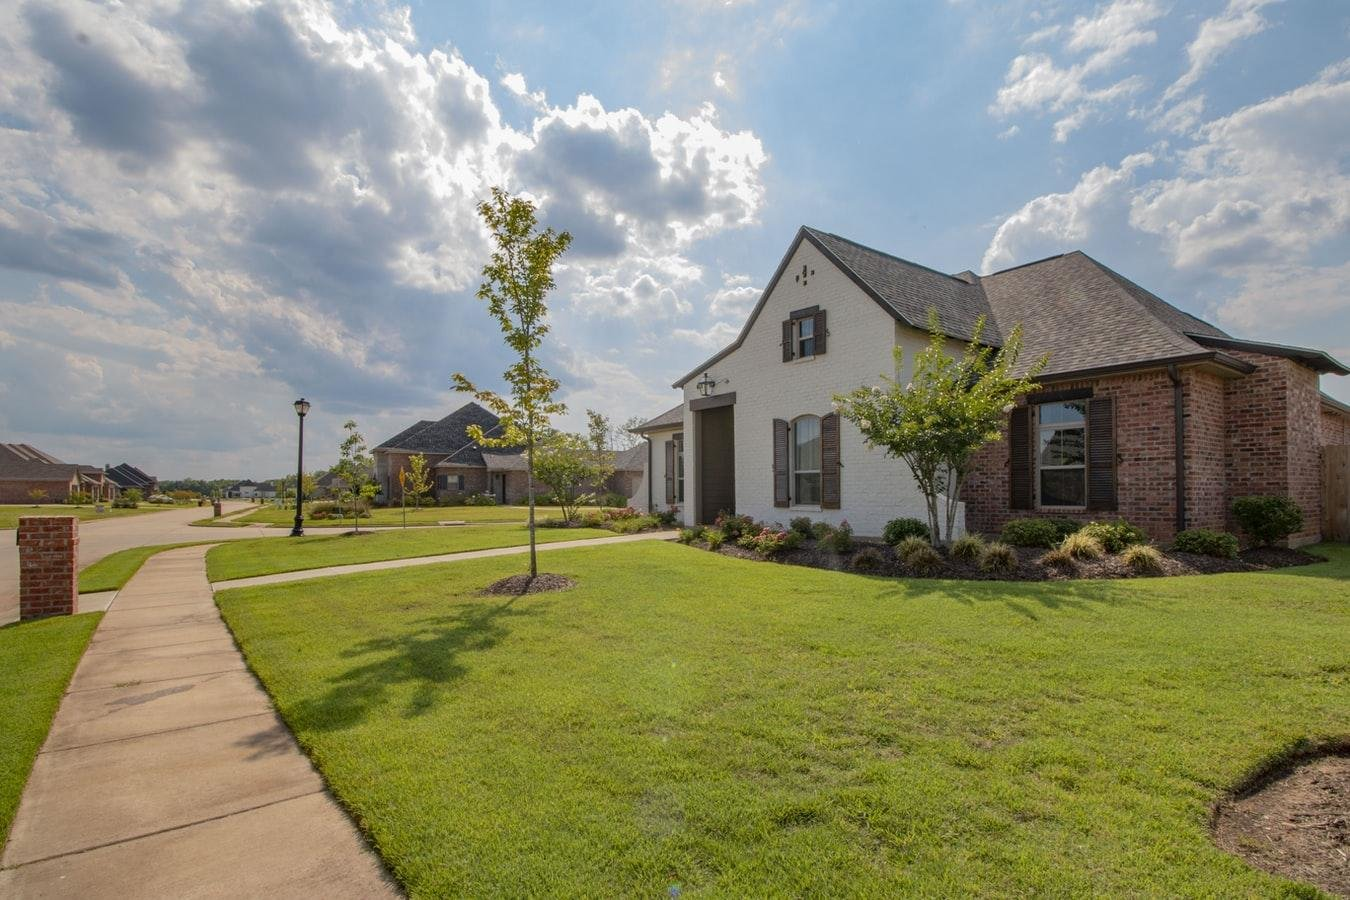 Richland Homes for Sale